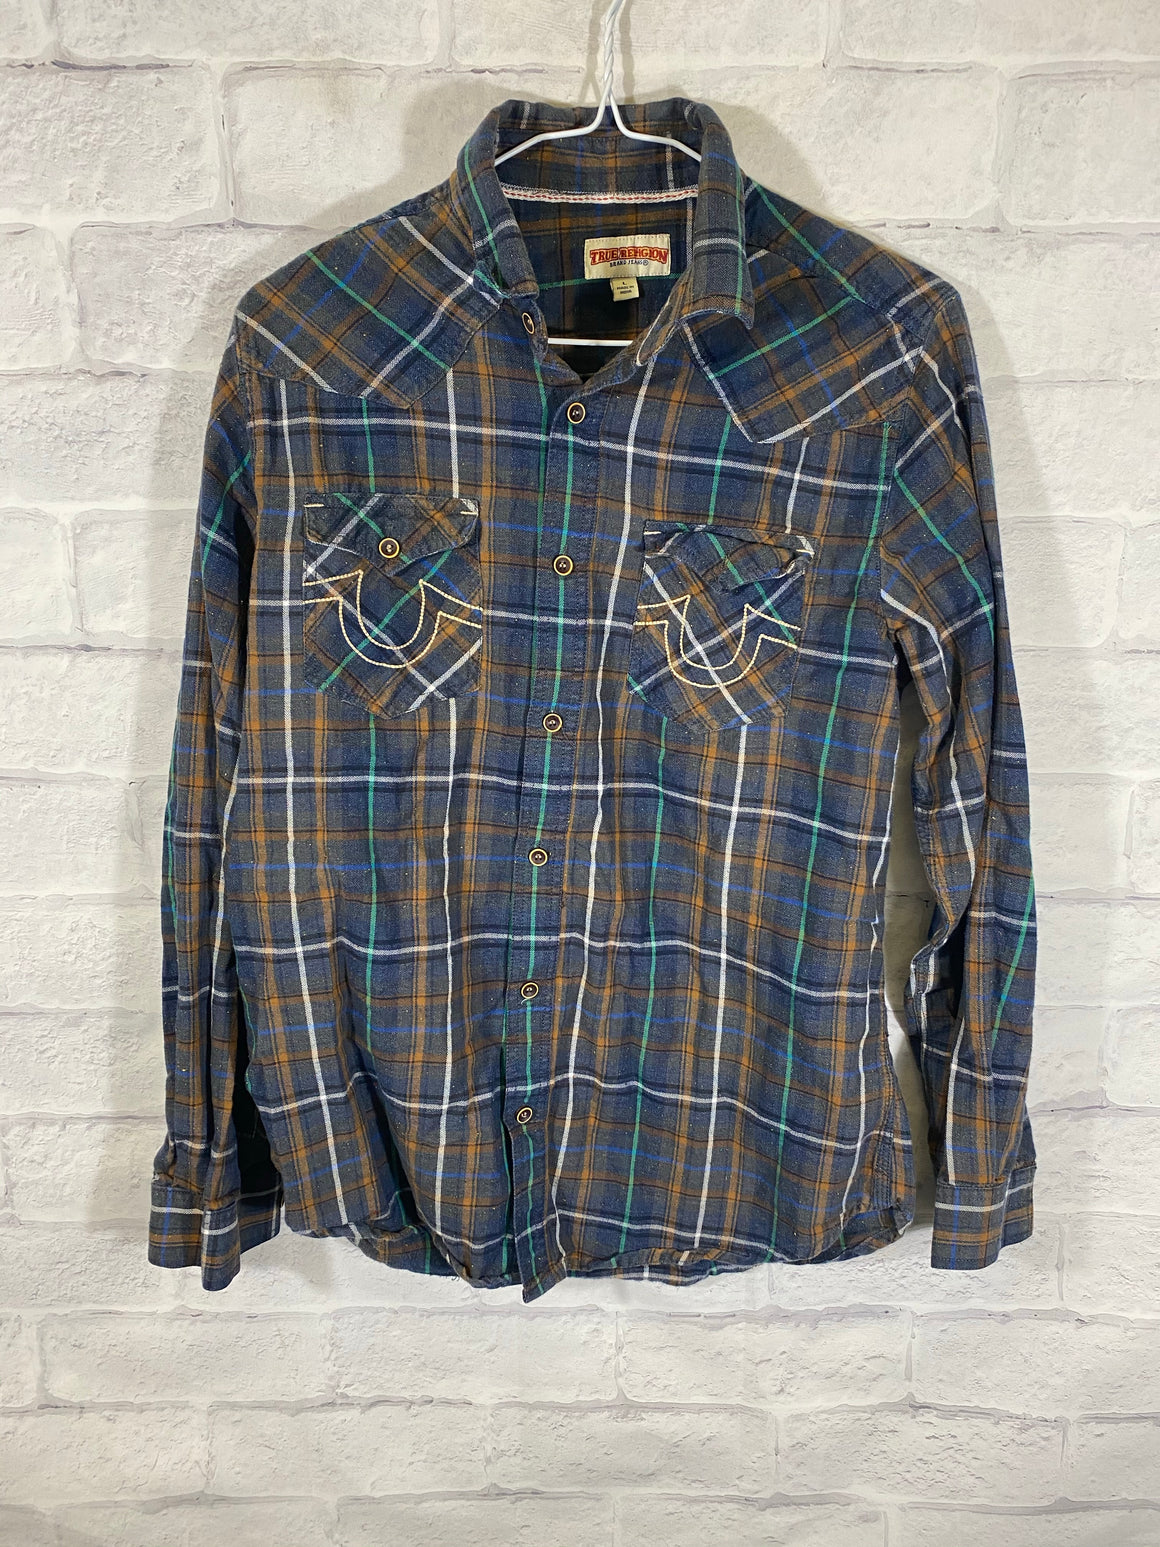 Superdry button down shirt